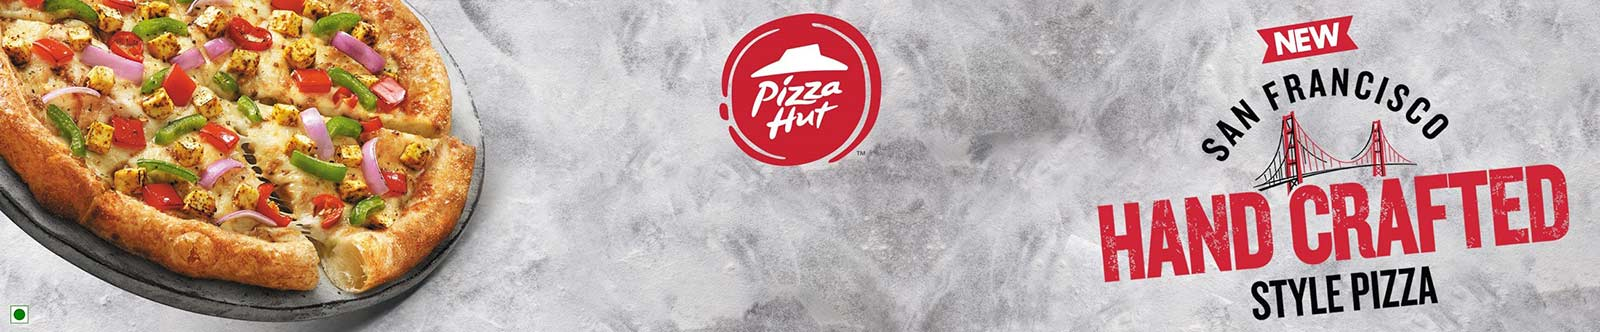 Pizza hut food at Elpro City Square